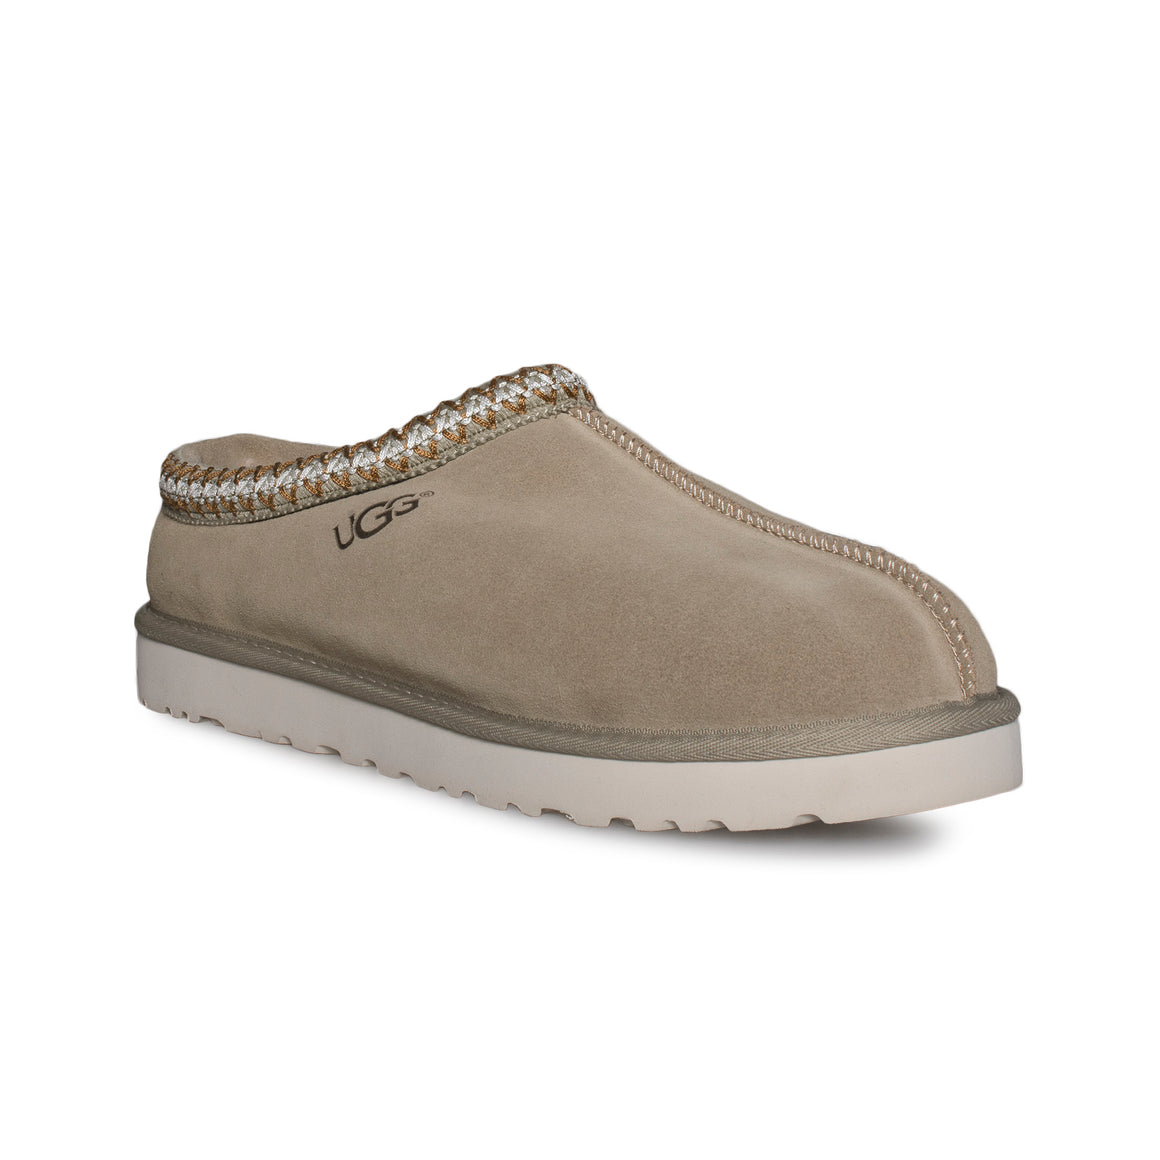 UGG Tasman Taupe Slippers - Men's